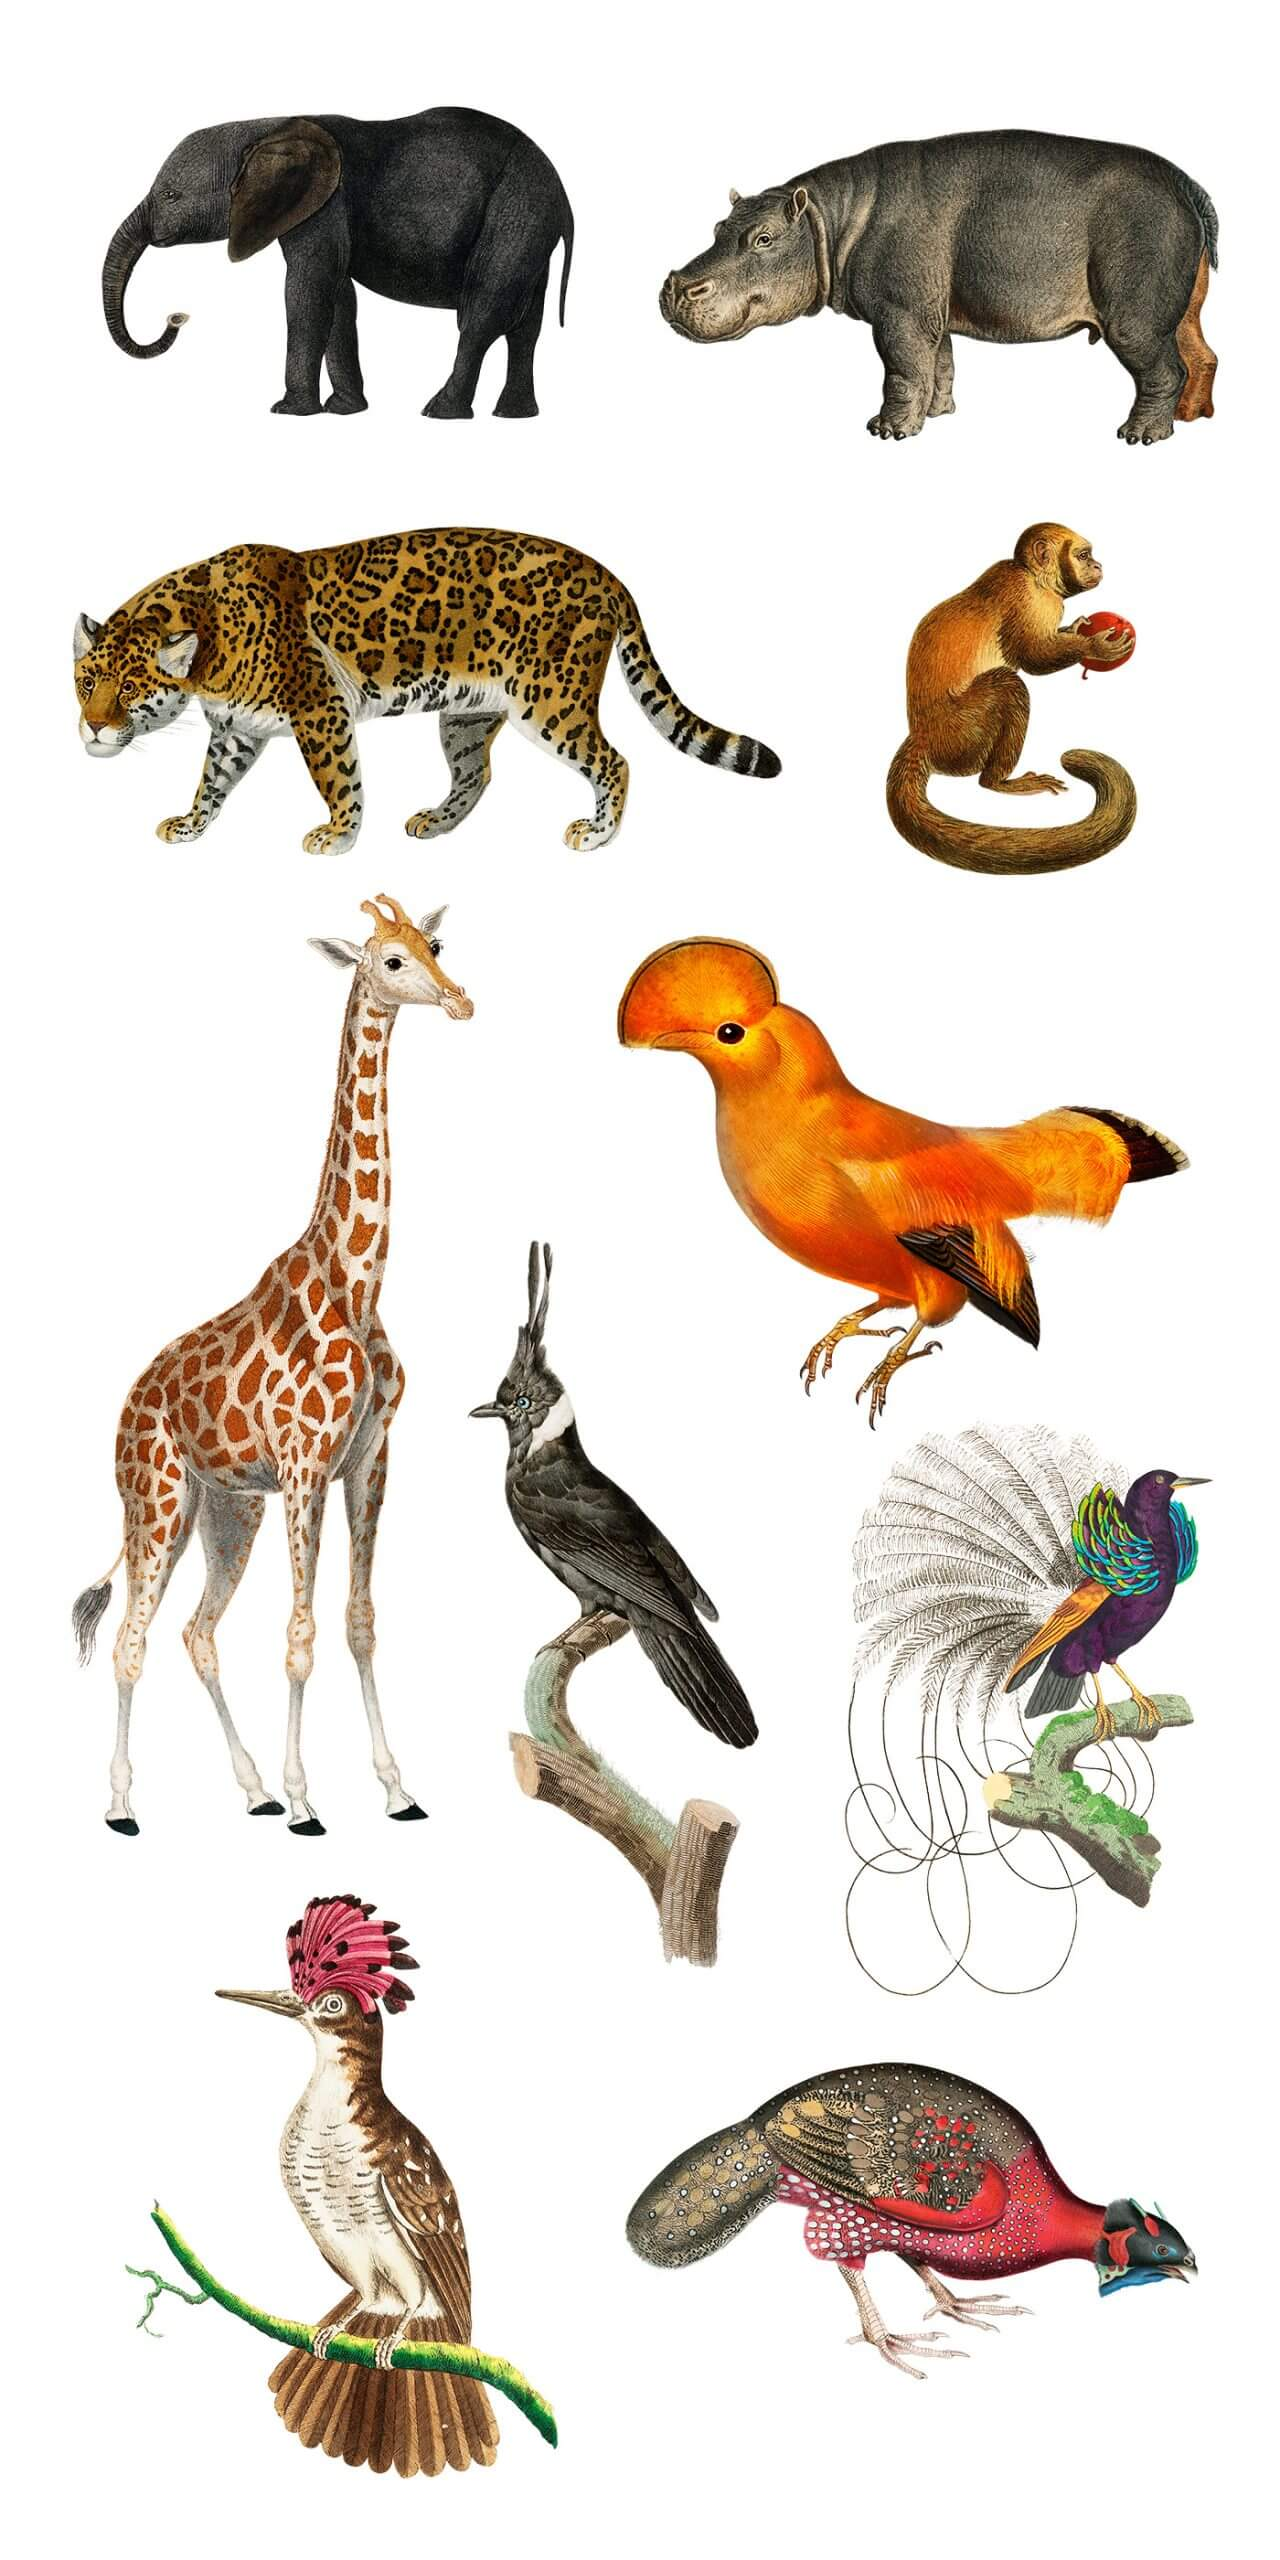 A Set of Free Wild Animal And Bird Illustrations